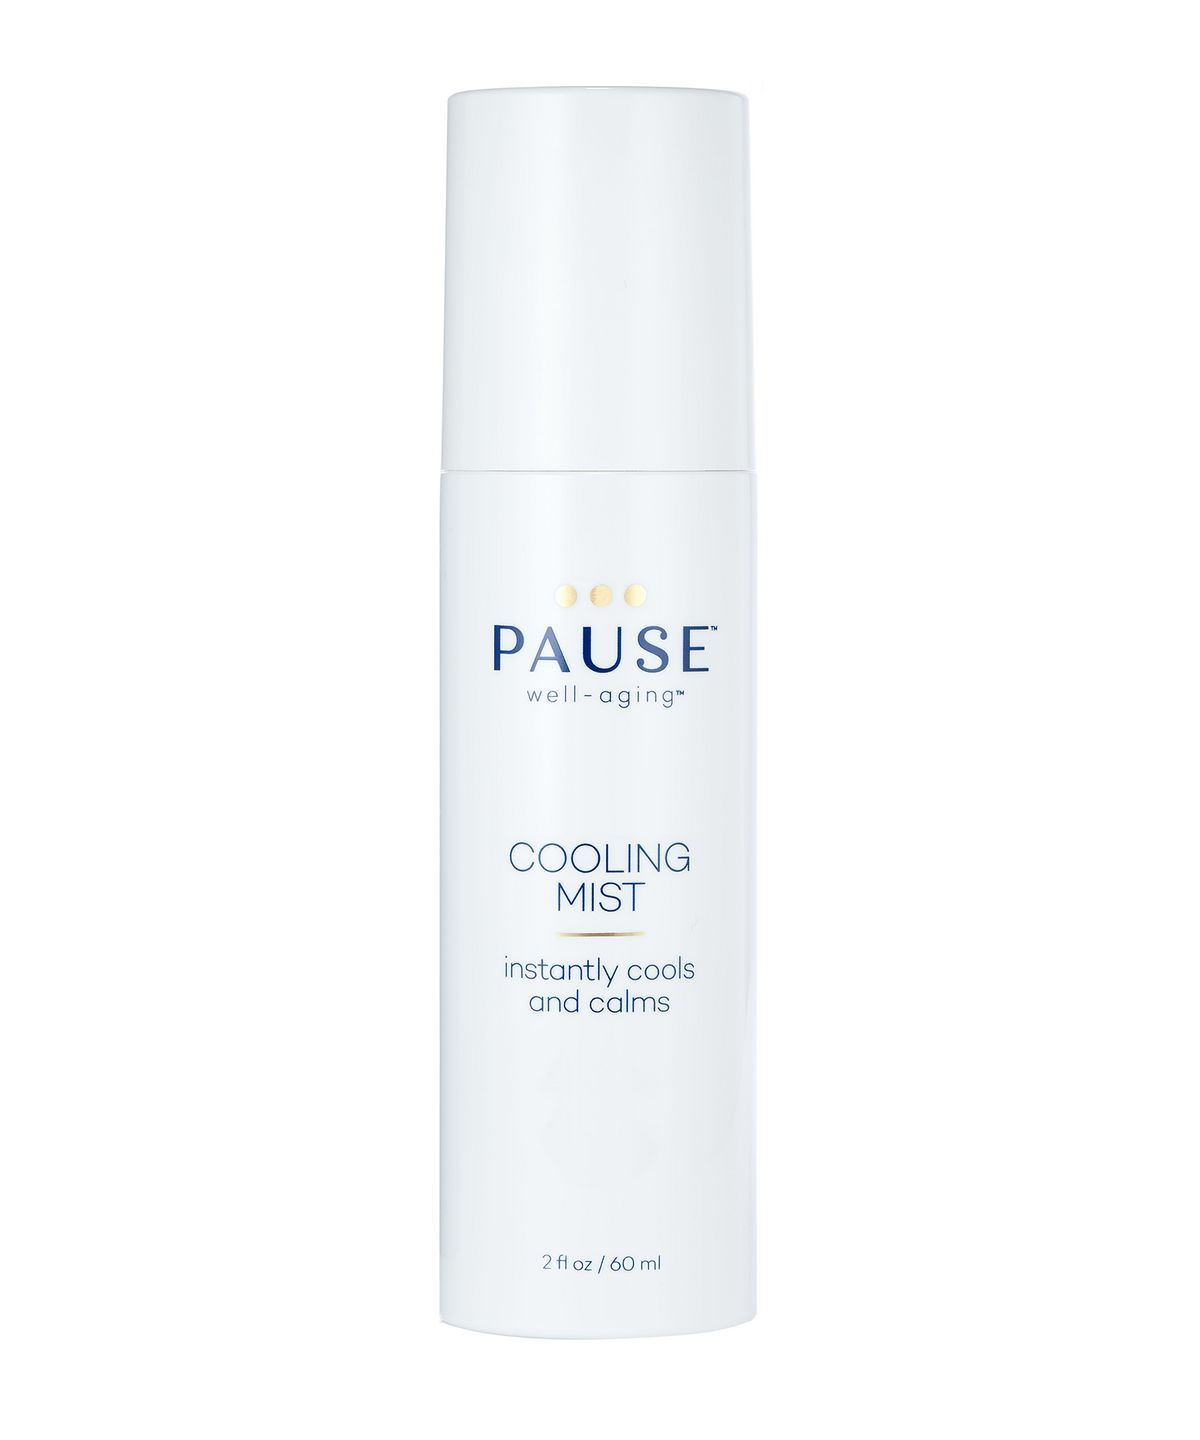 combat menopause on the go, Pause Well-Aging Cooling Mist white bottle with blue text